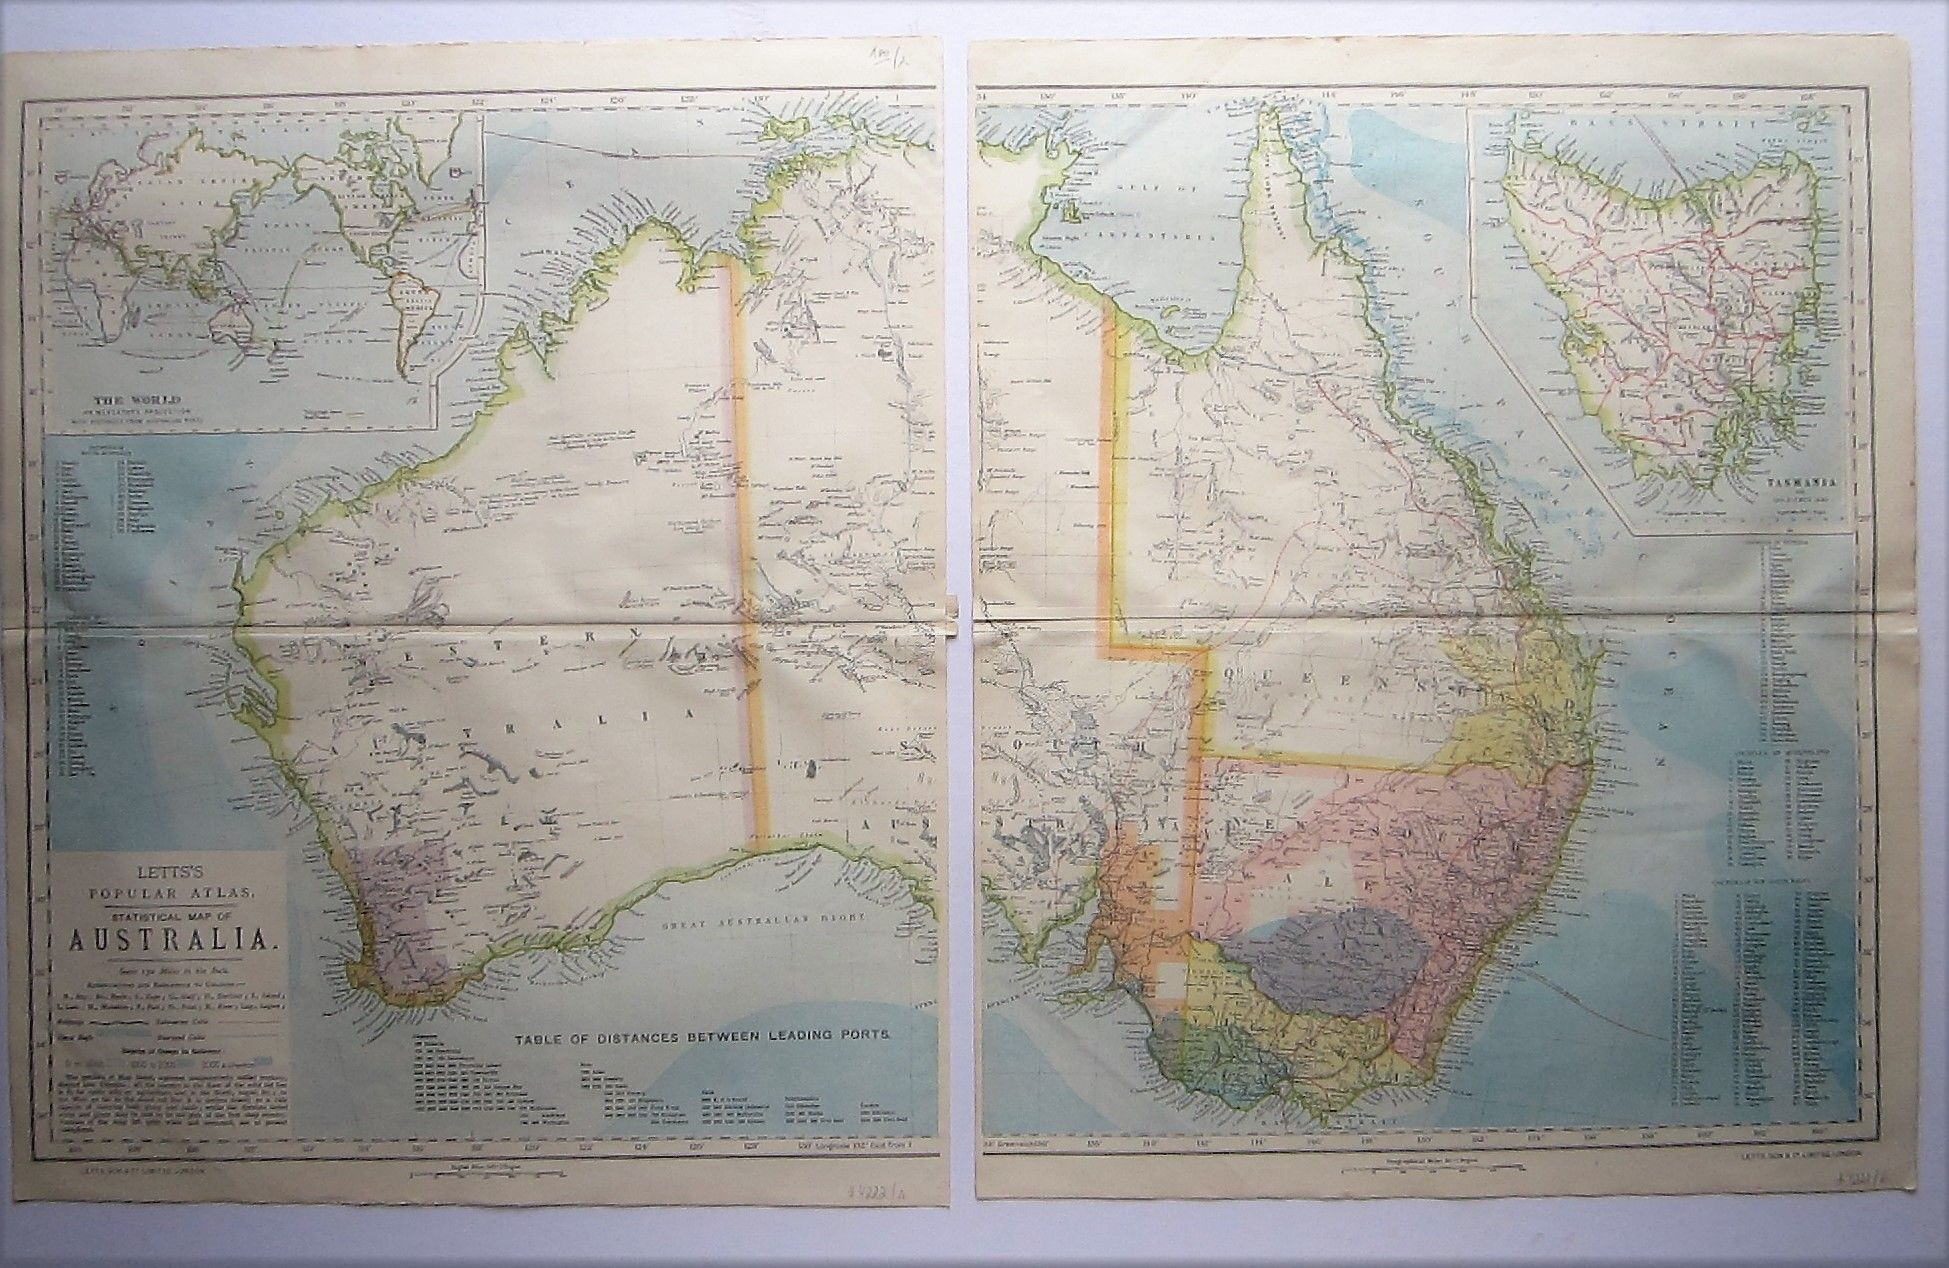 Statistical Map of Australia (photo 1)